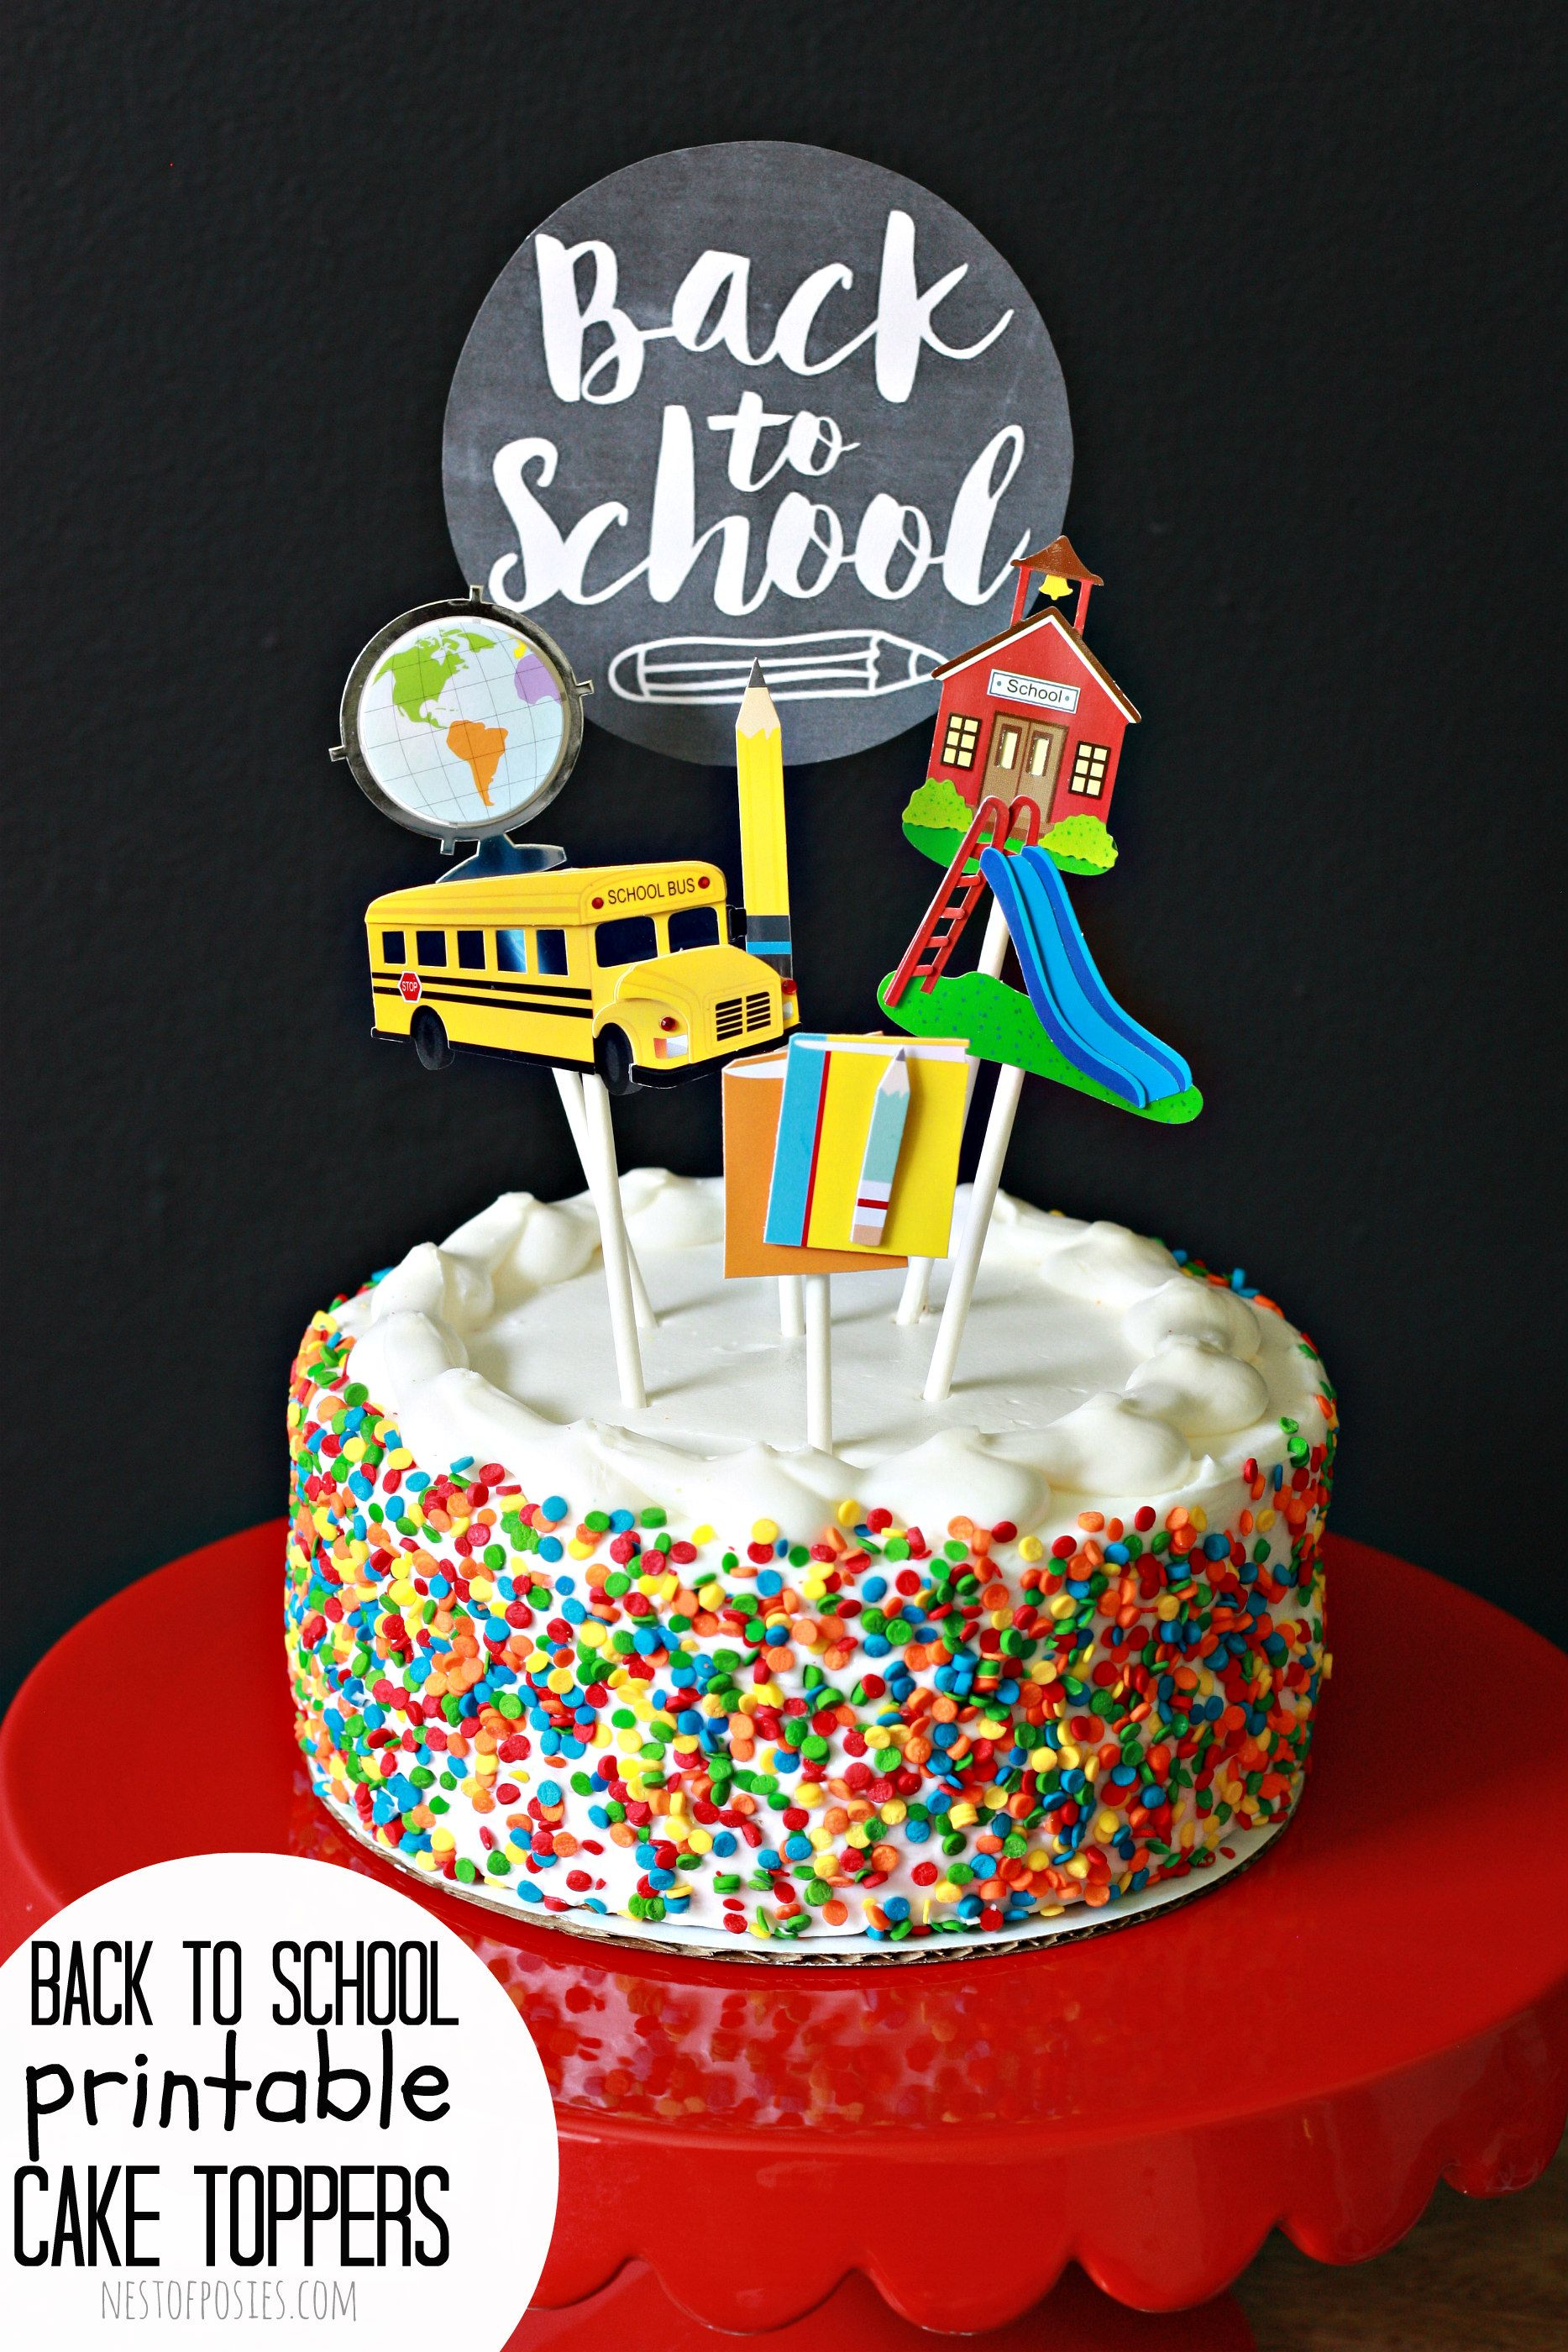 Cake Topper For Back To School With Images School Cake